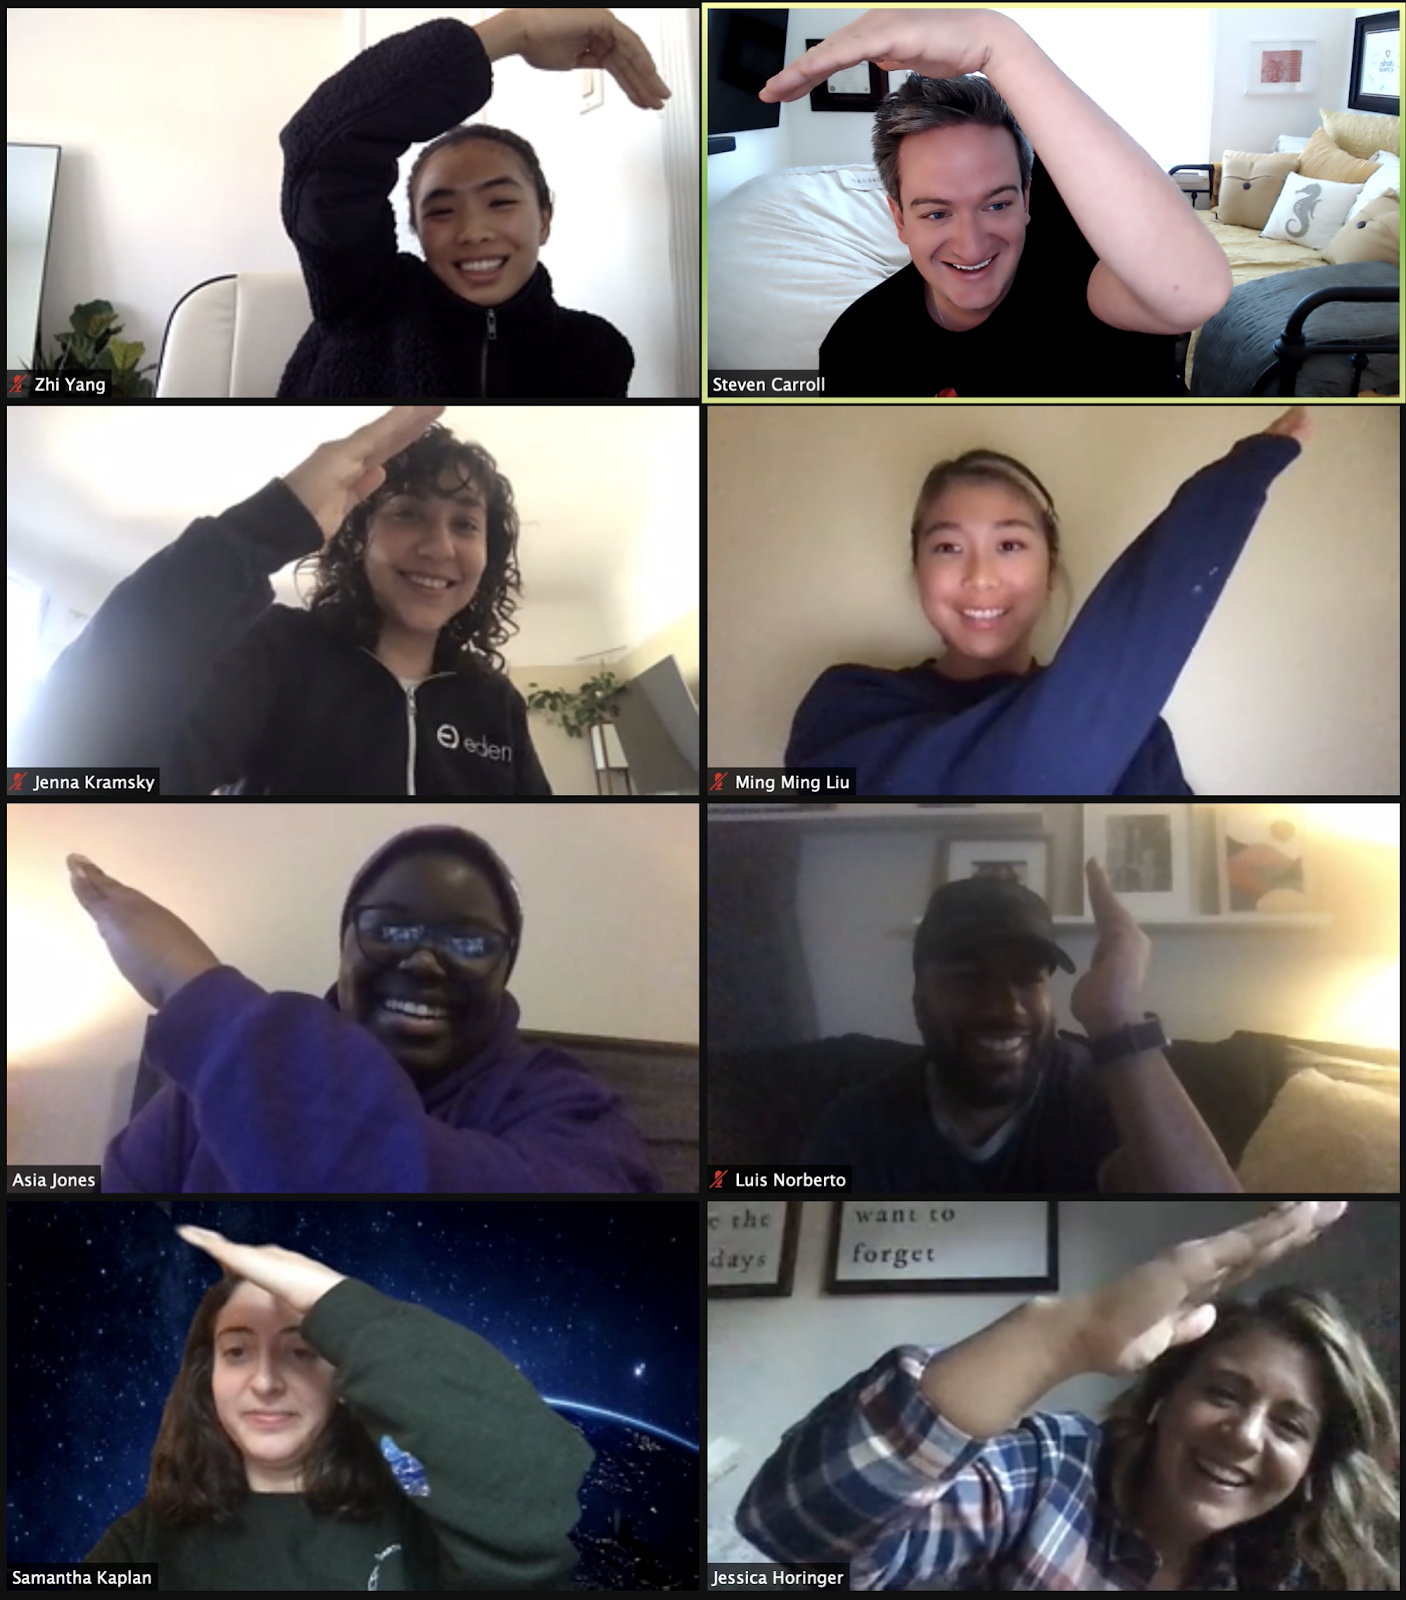 A screenshot of 8 Zoom participants posing to create 1 giant Zoom heart